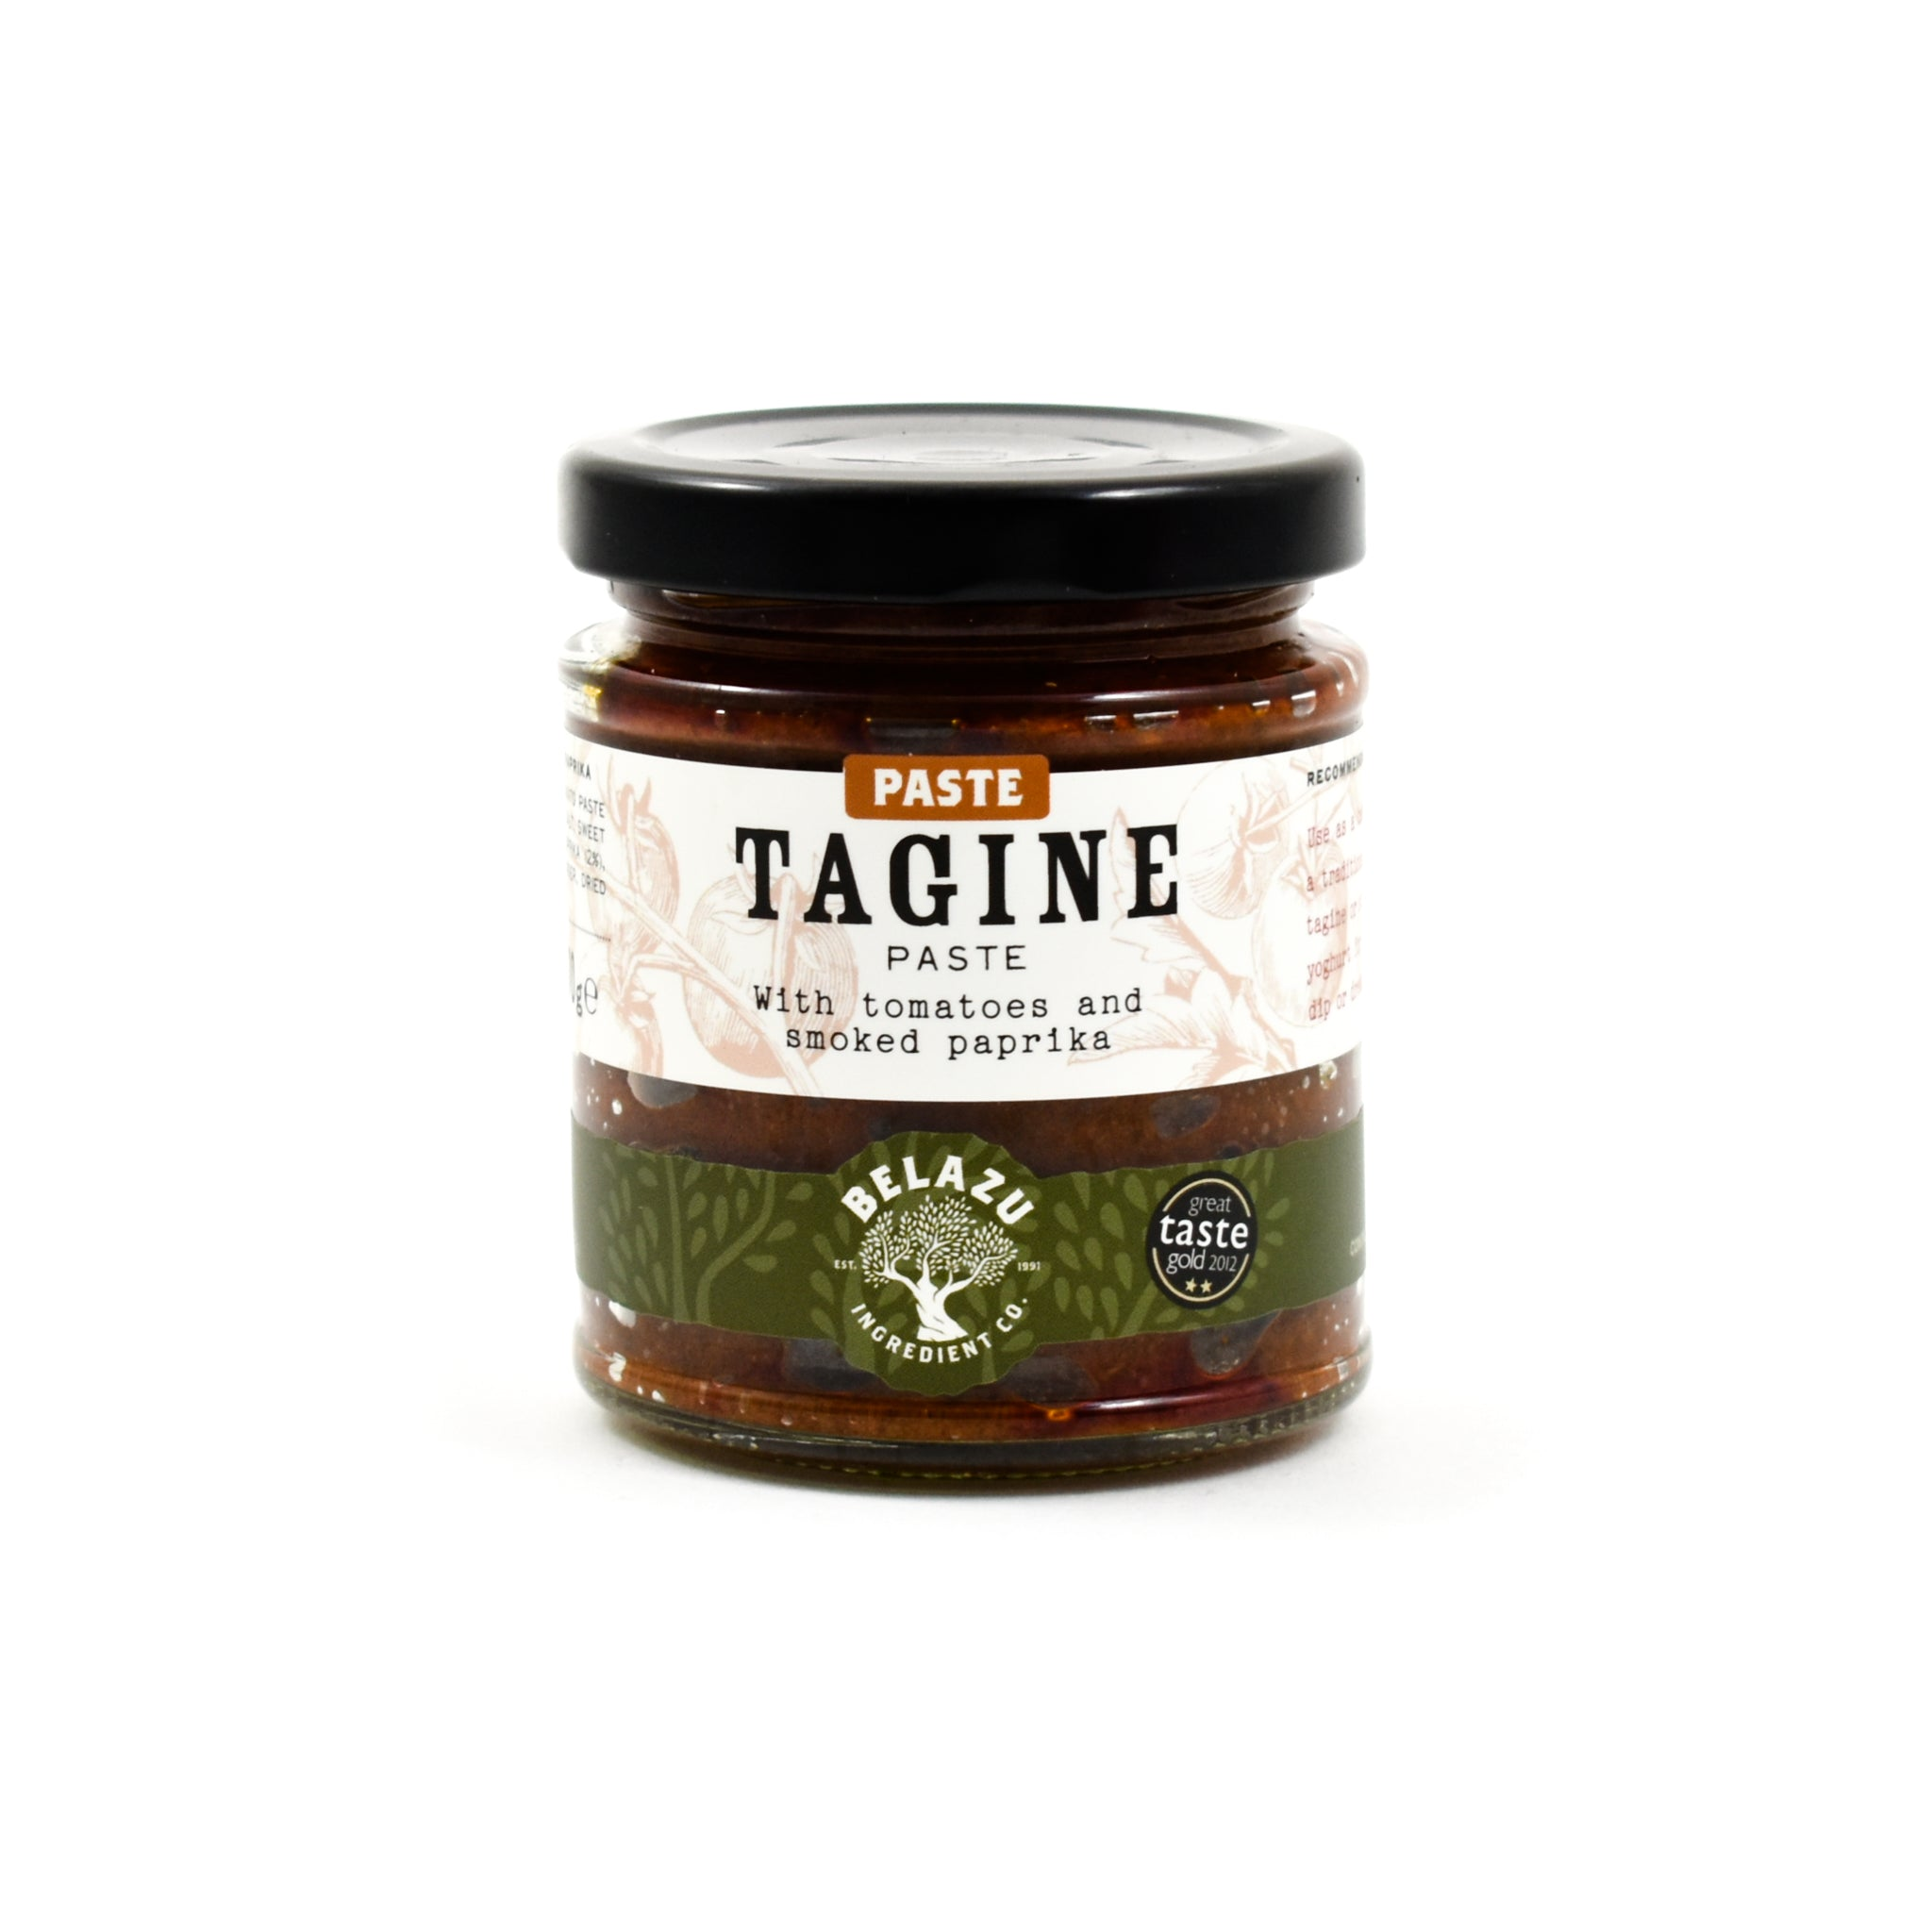 Belazu Tagine Paste 170g Ingredients Sauces & Condiments